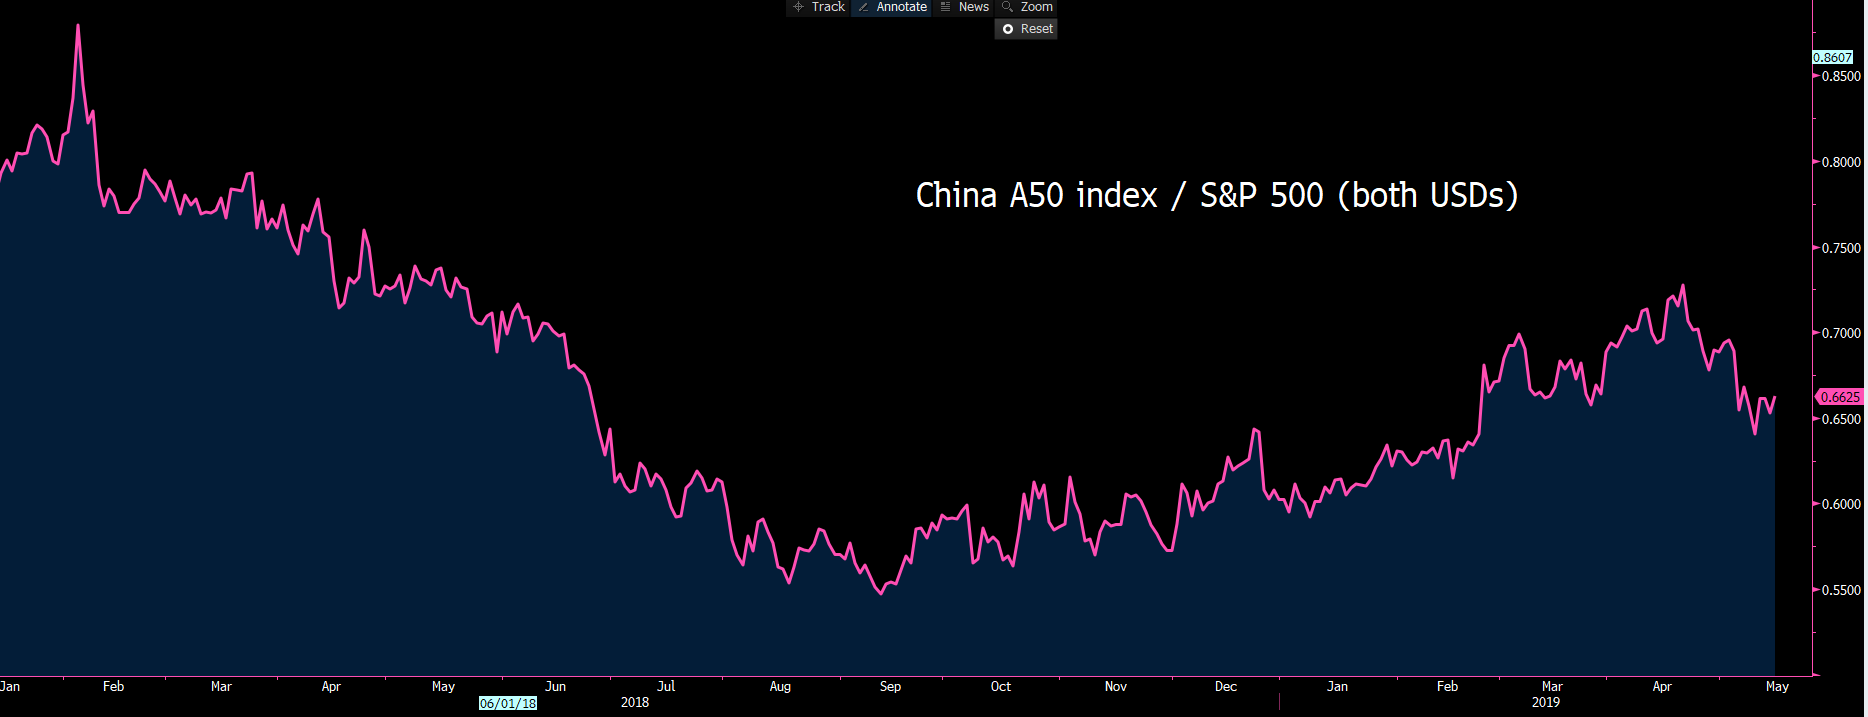 China A50 Index S&P 500 Both USD